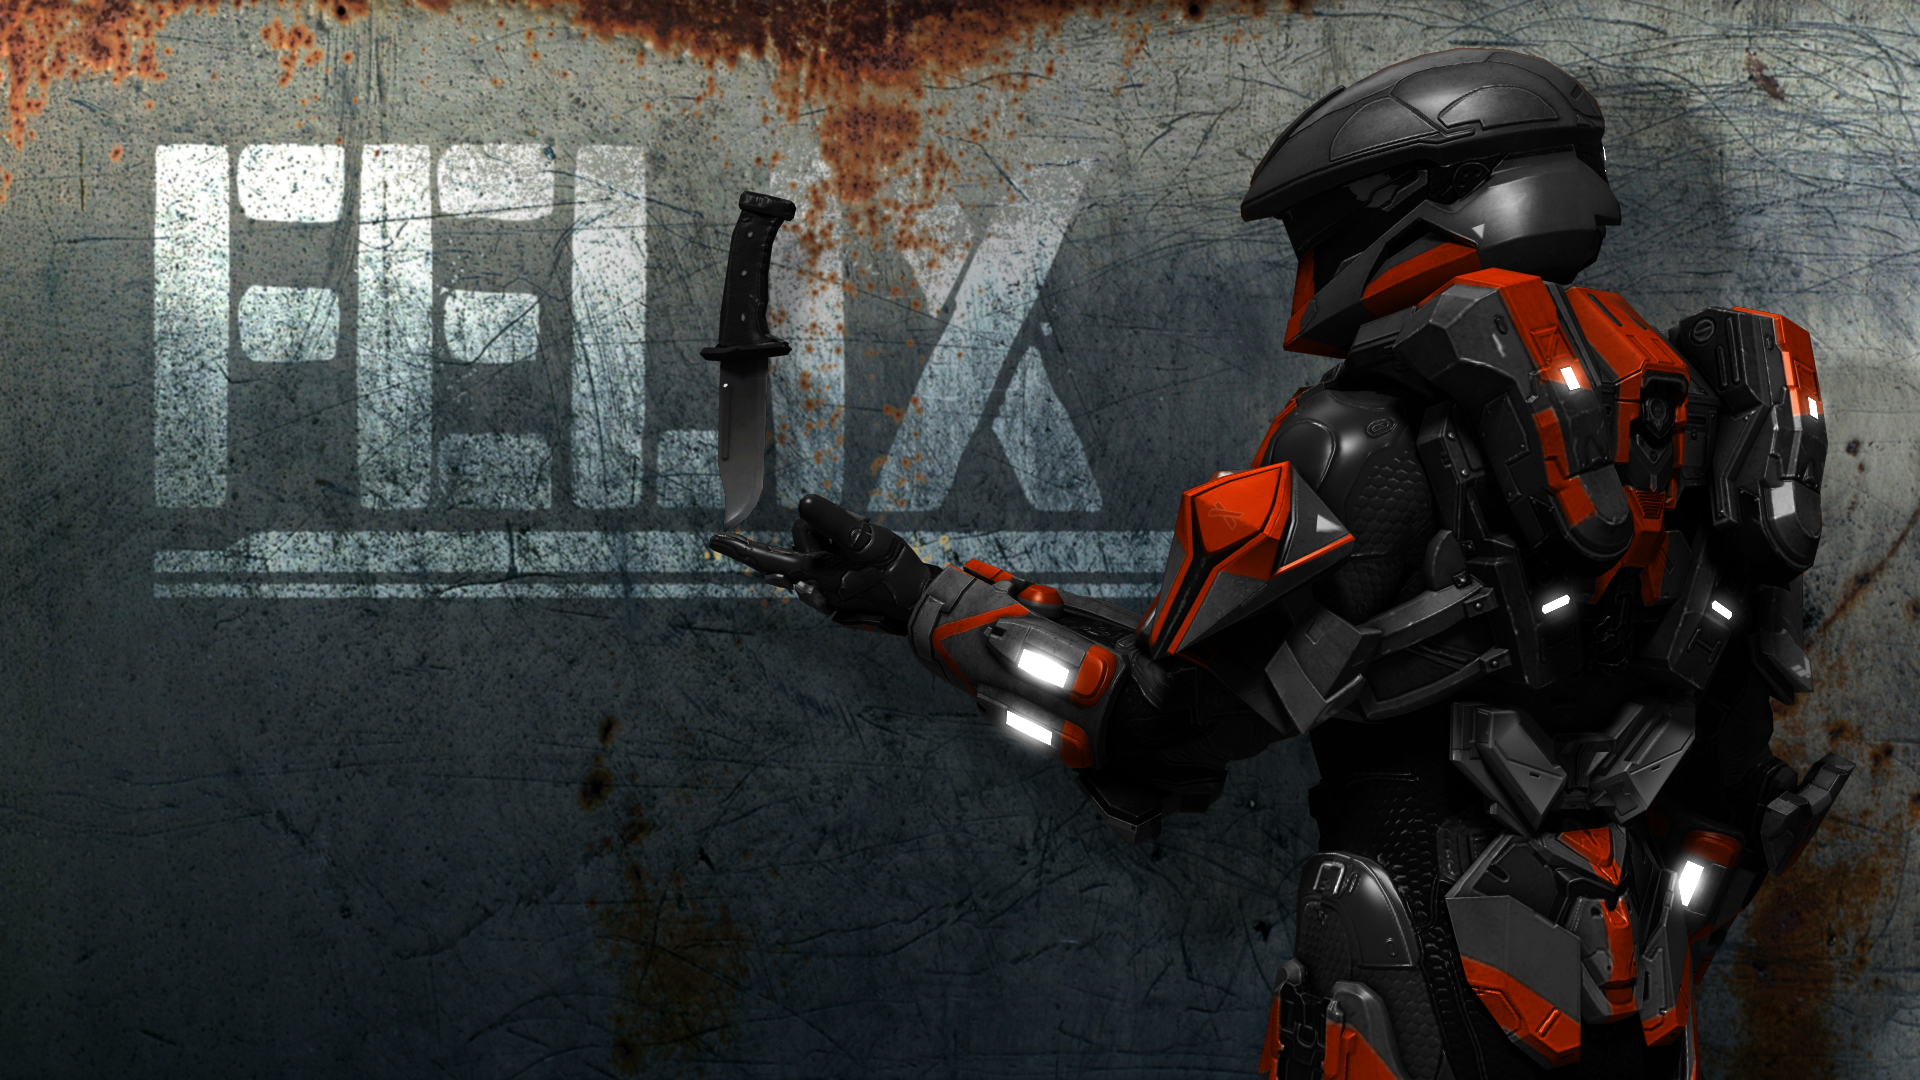 10 Top Red Vs Blue Background FULL HD 1920×1080 For PC ...